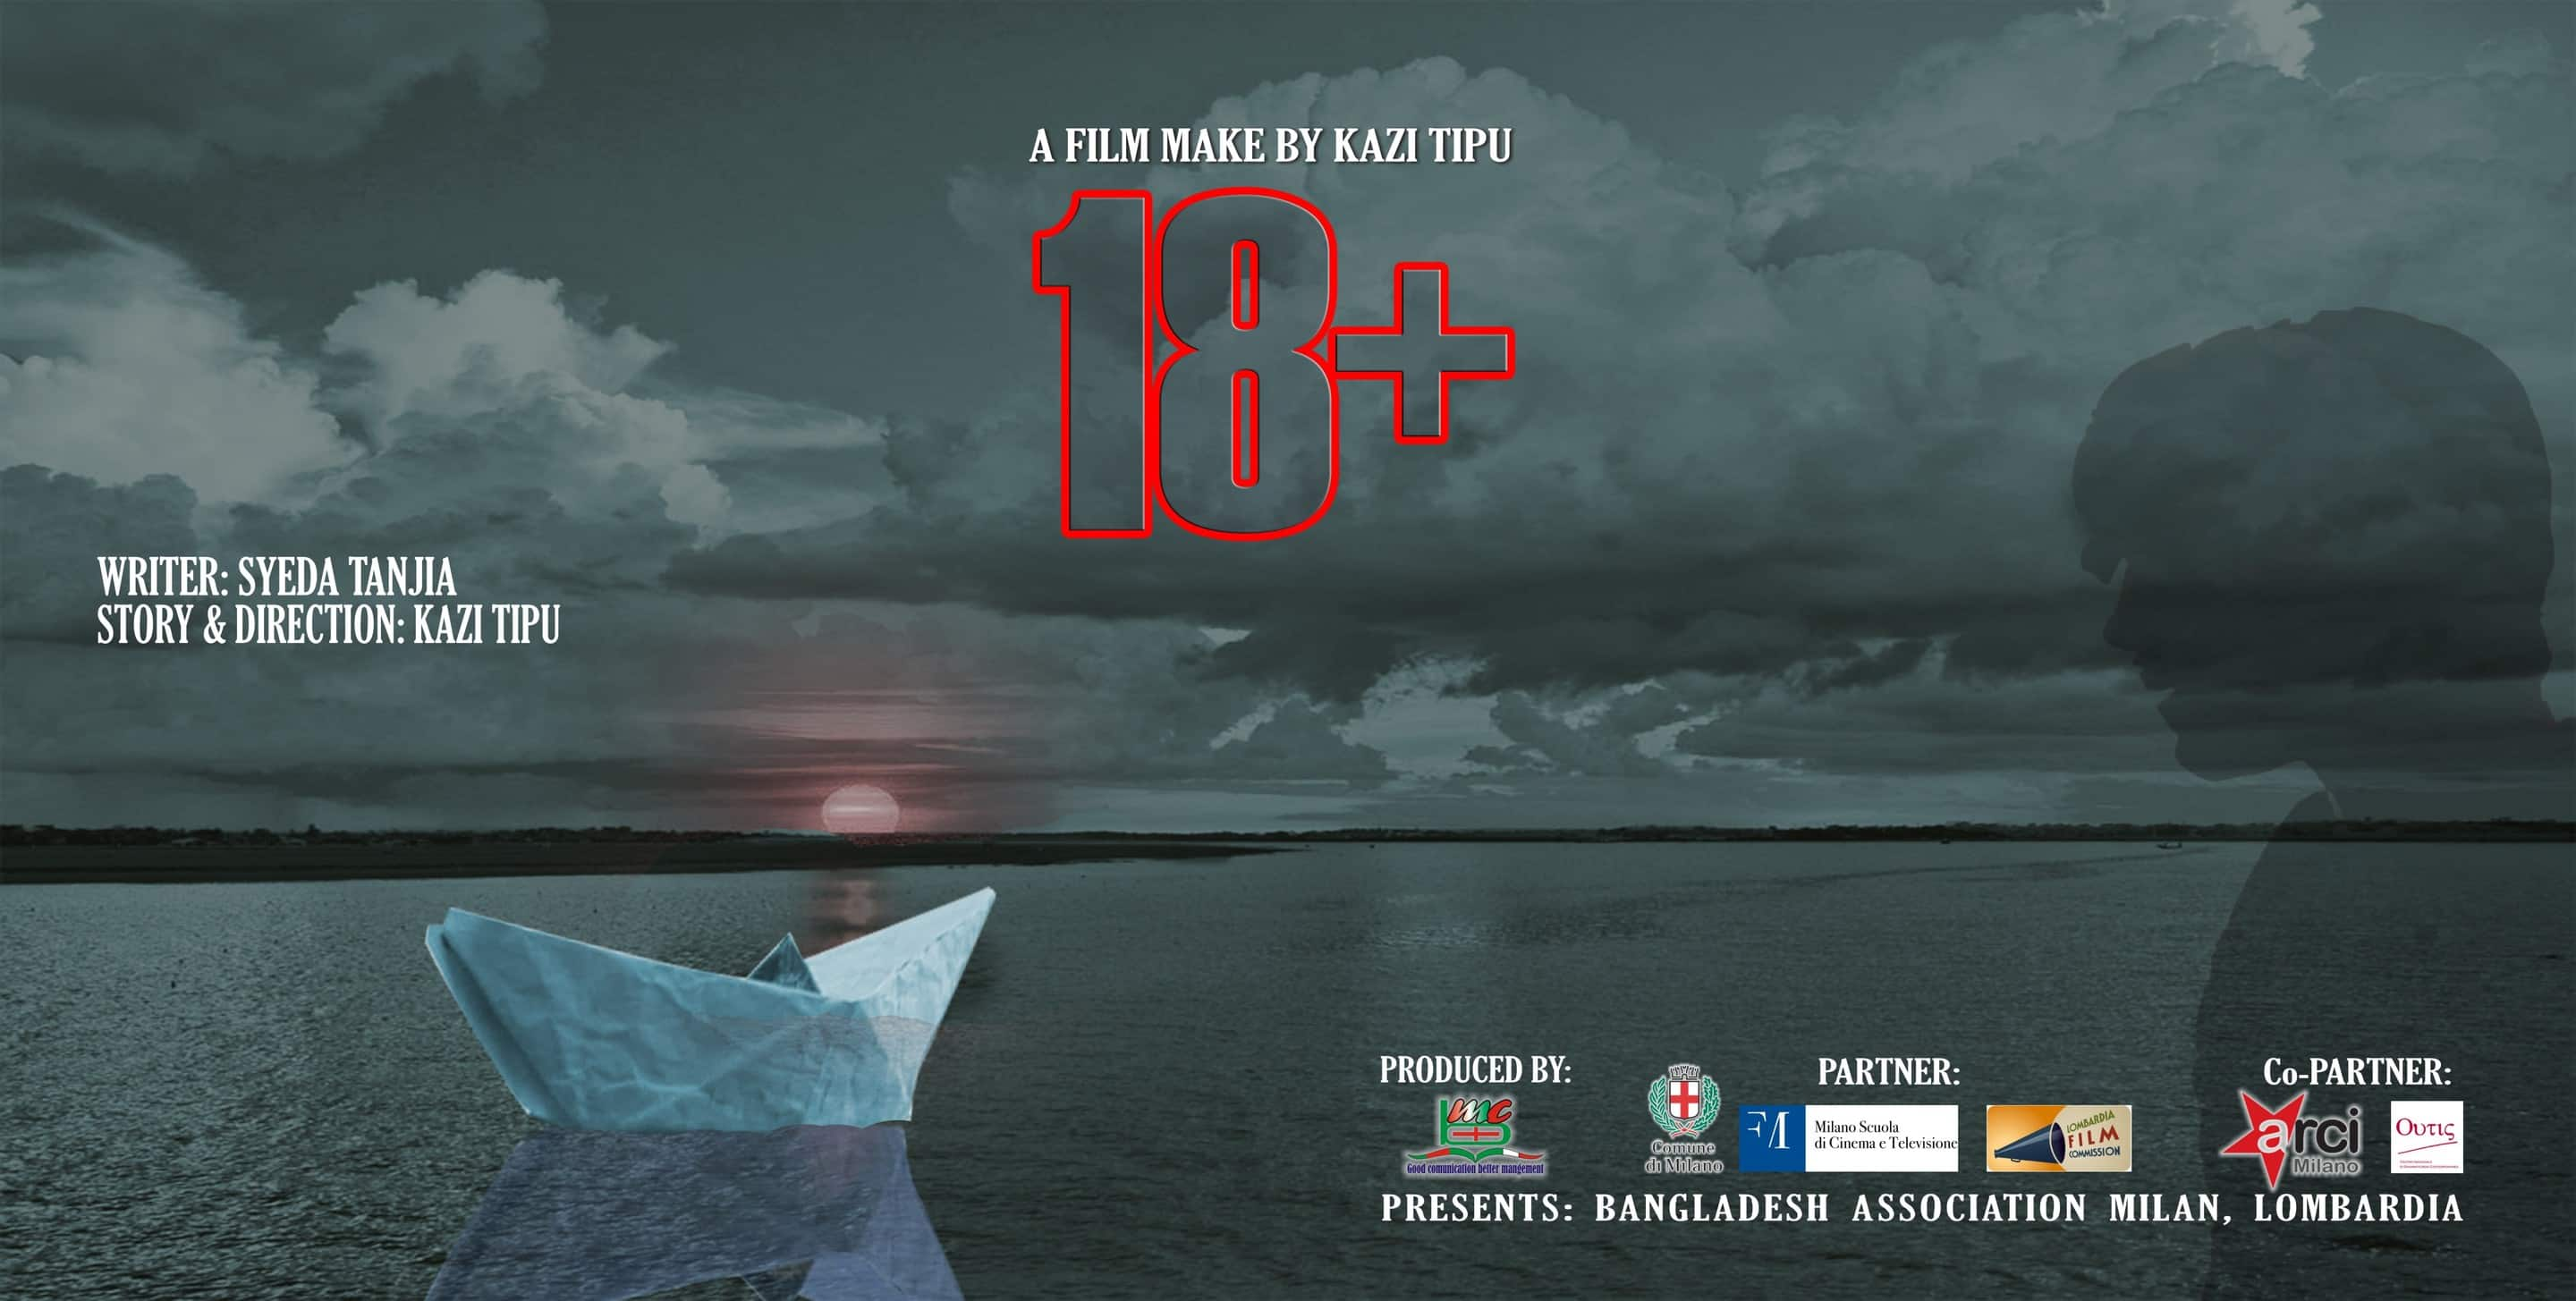 18+ (Bangladesh/Italy movie)